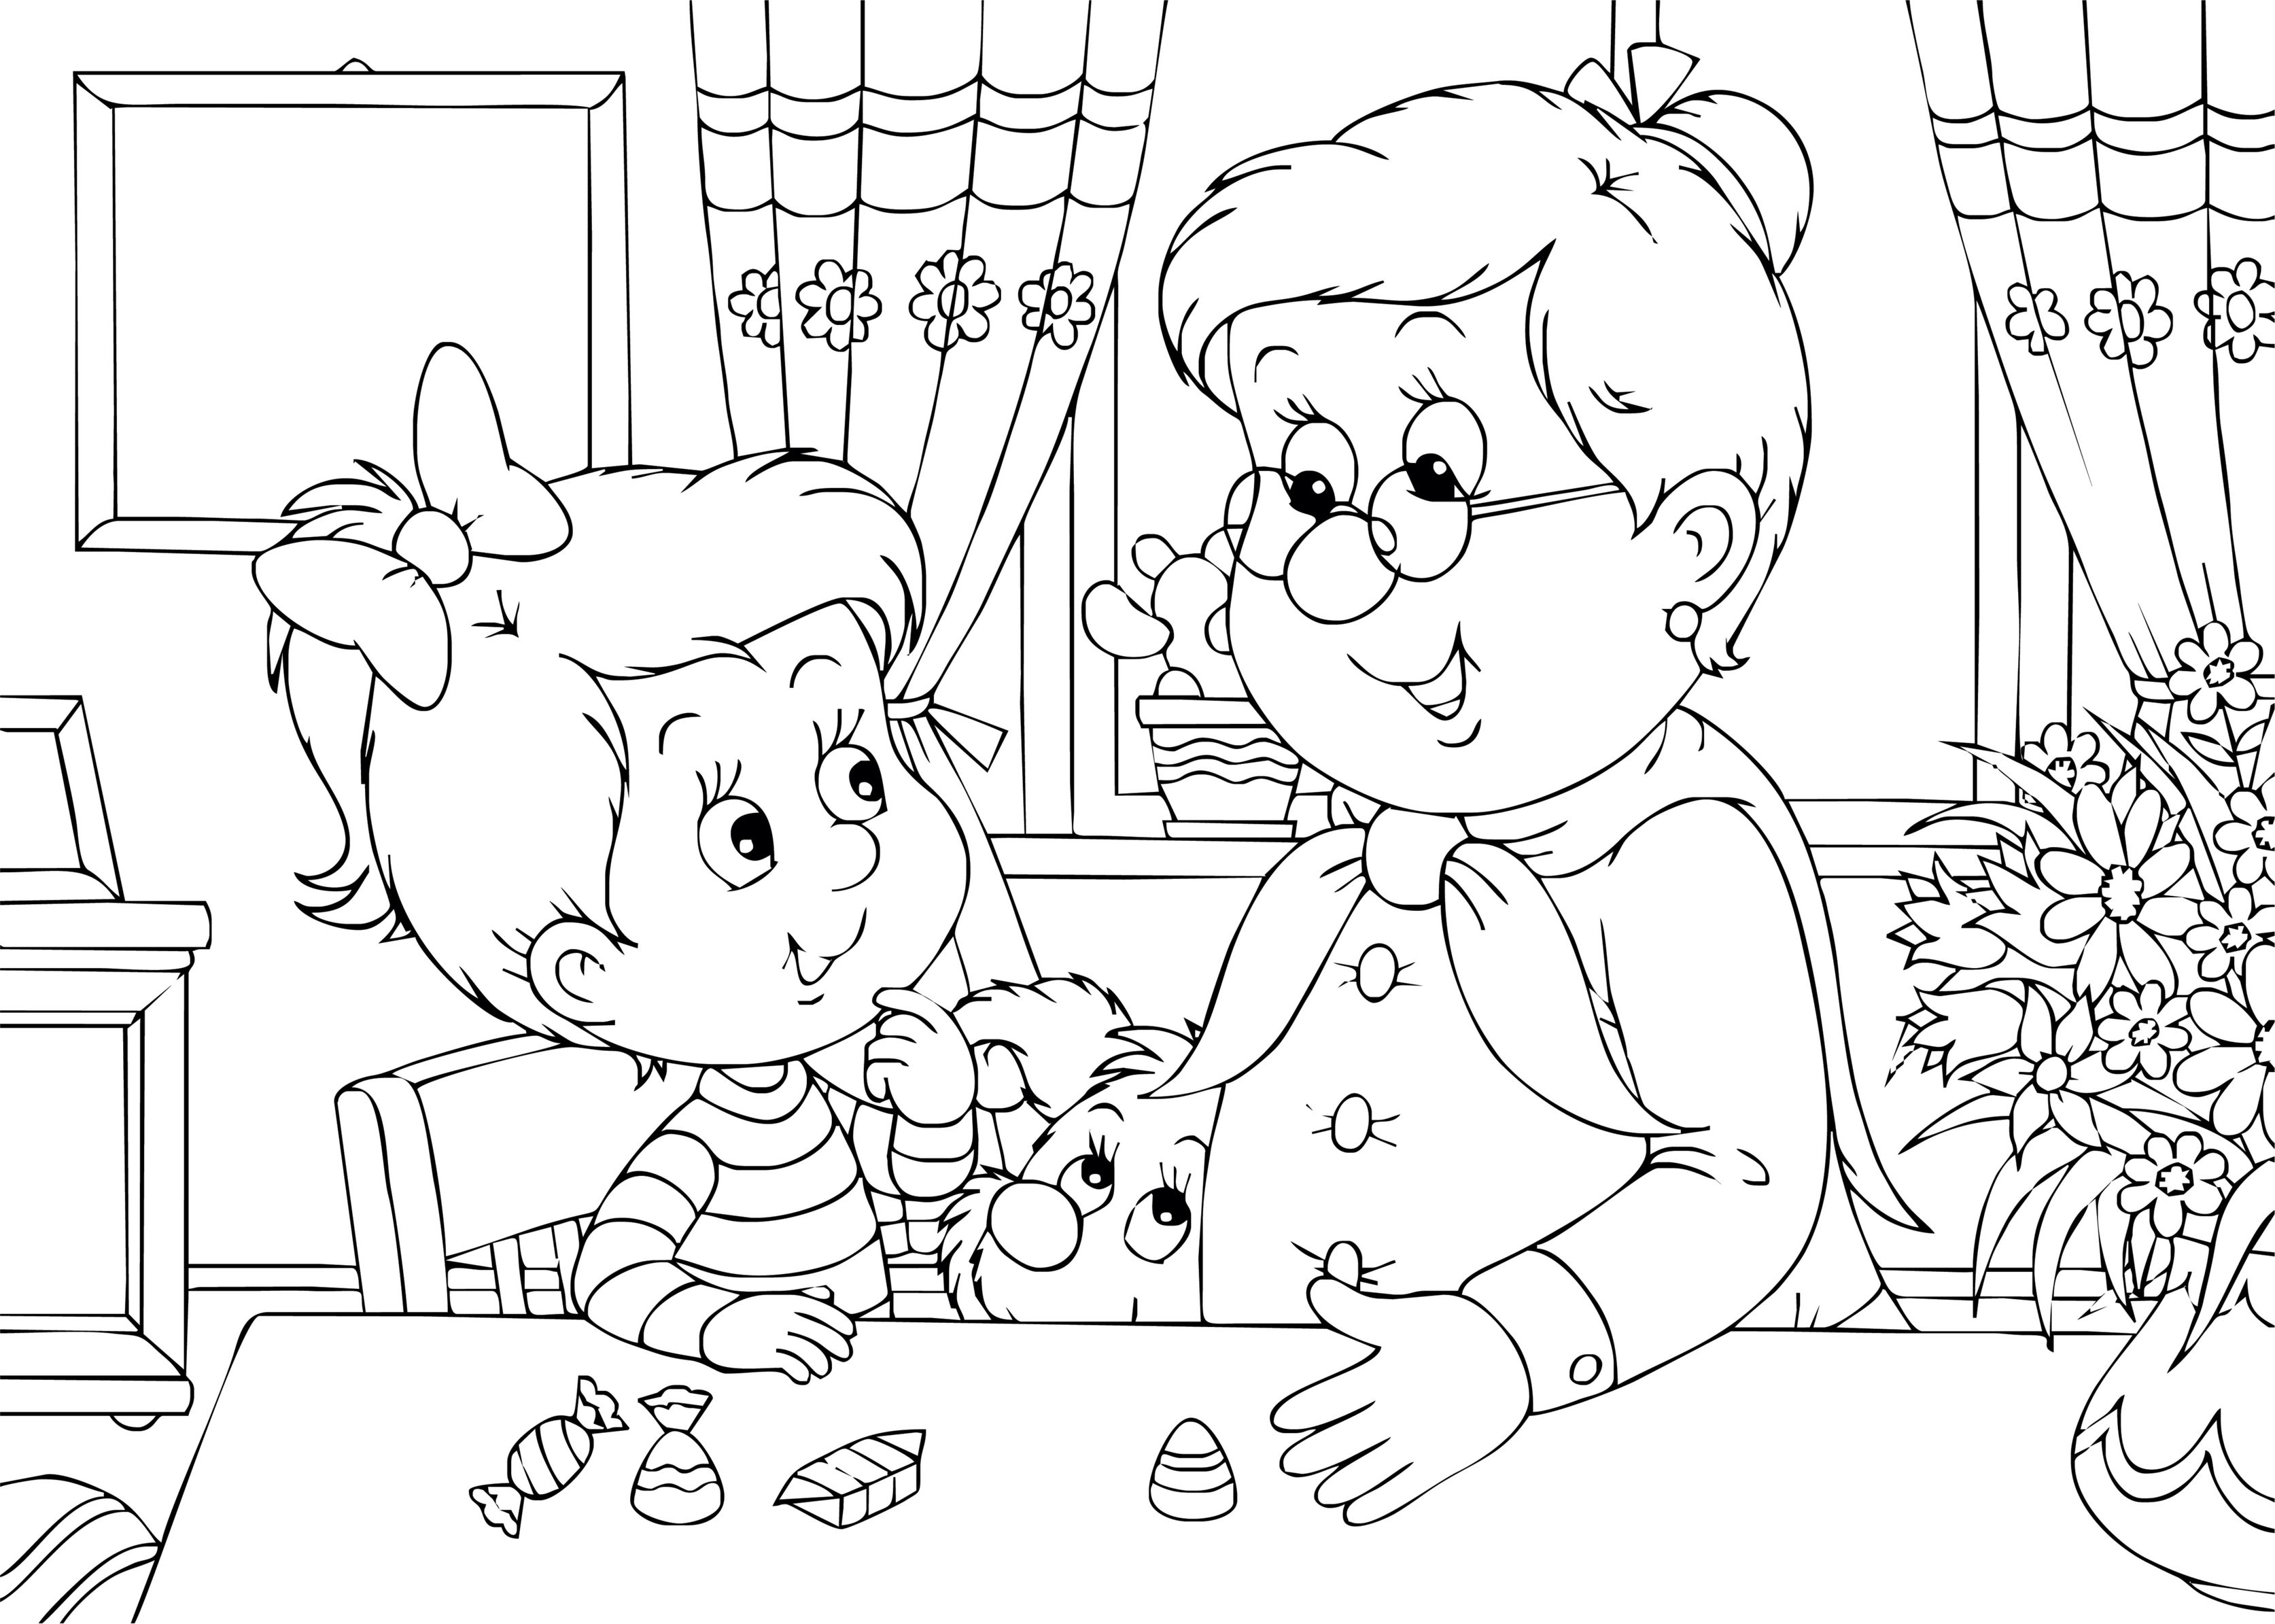 Mothers day coloring sheets for sunday school - Mothers Day Coloring Pages Grandma